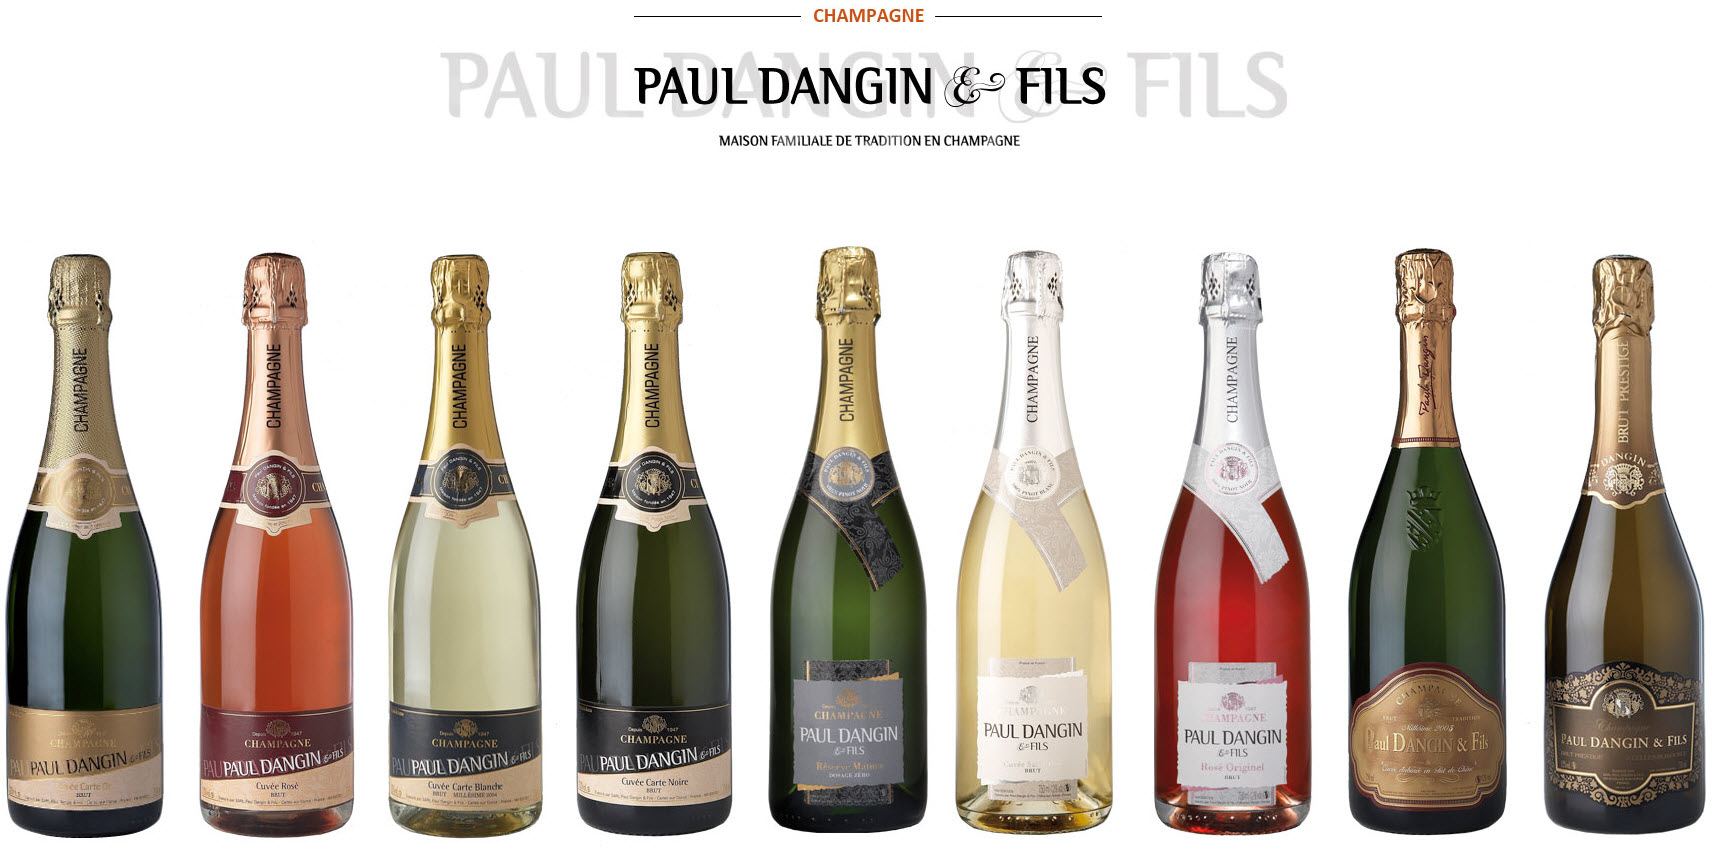 Champagne Paul Dangin Fils